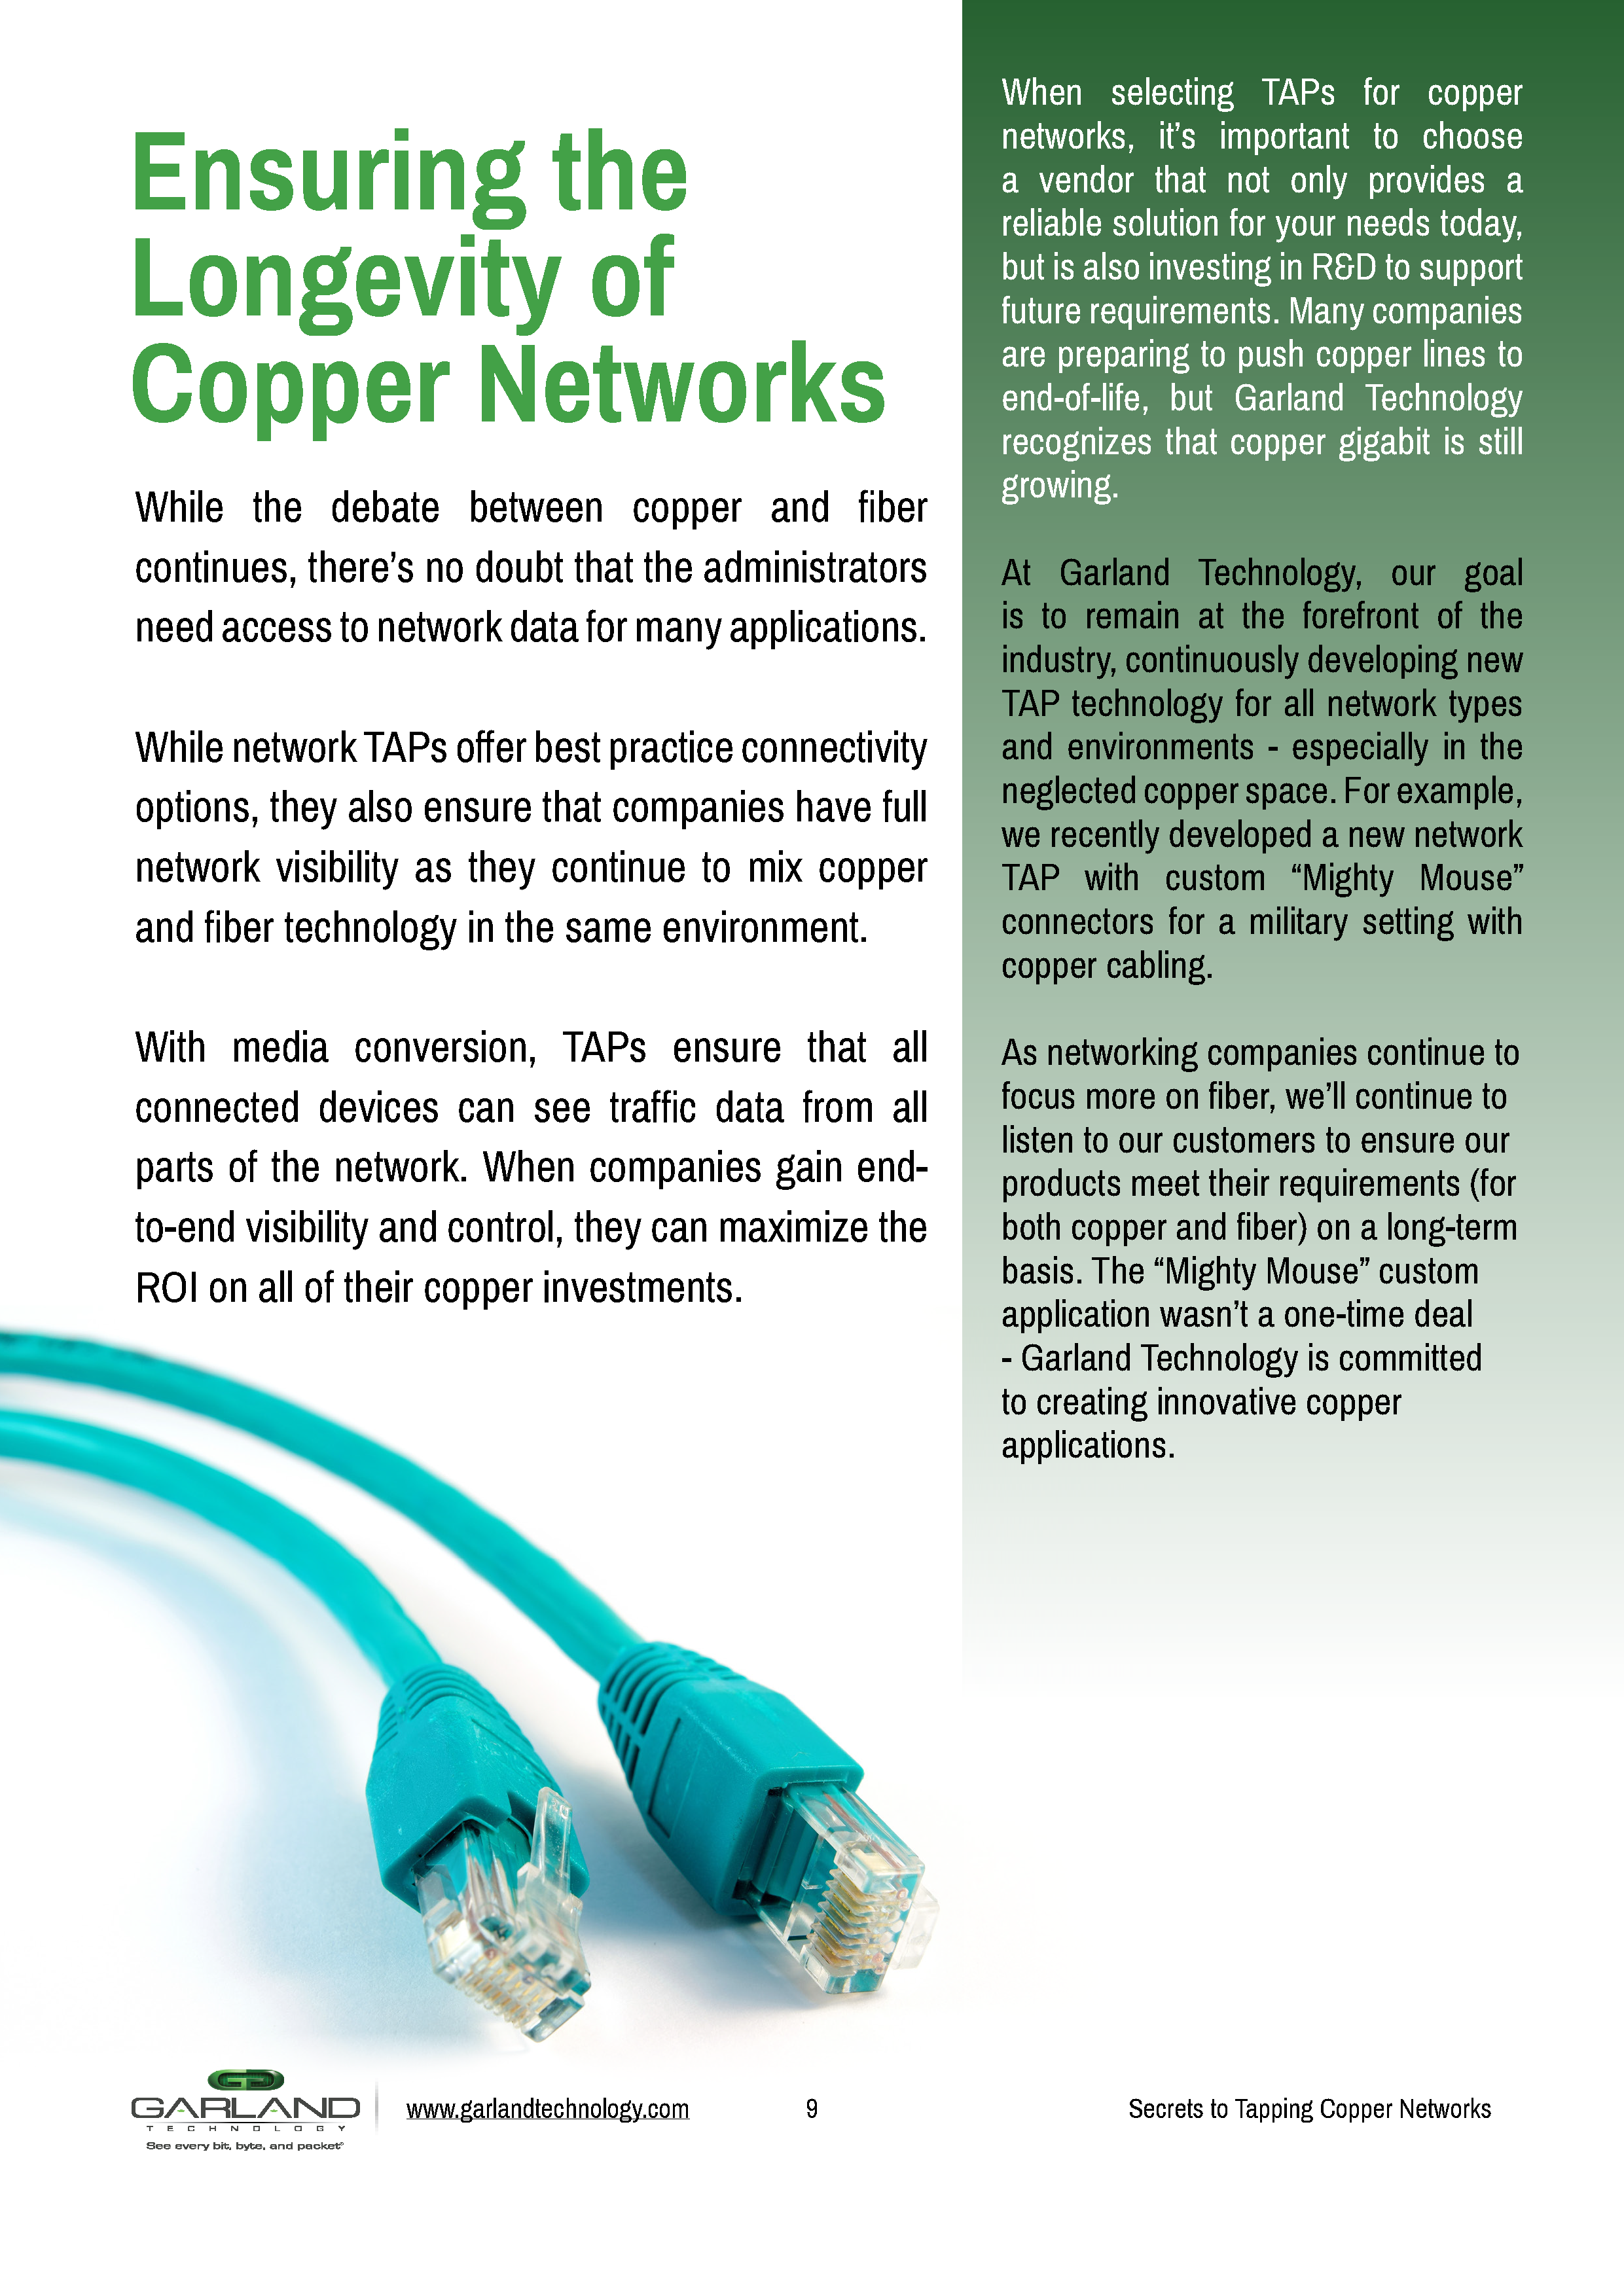 Secrets to Tapping Copper Networks